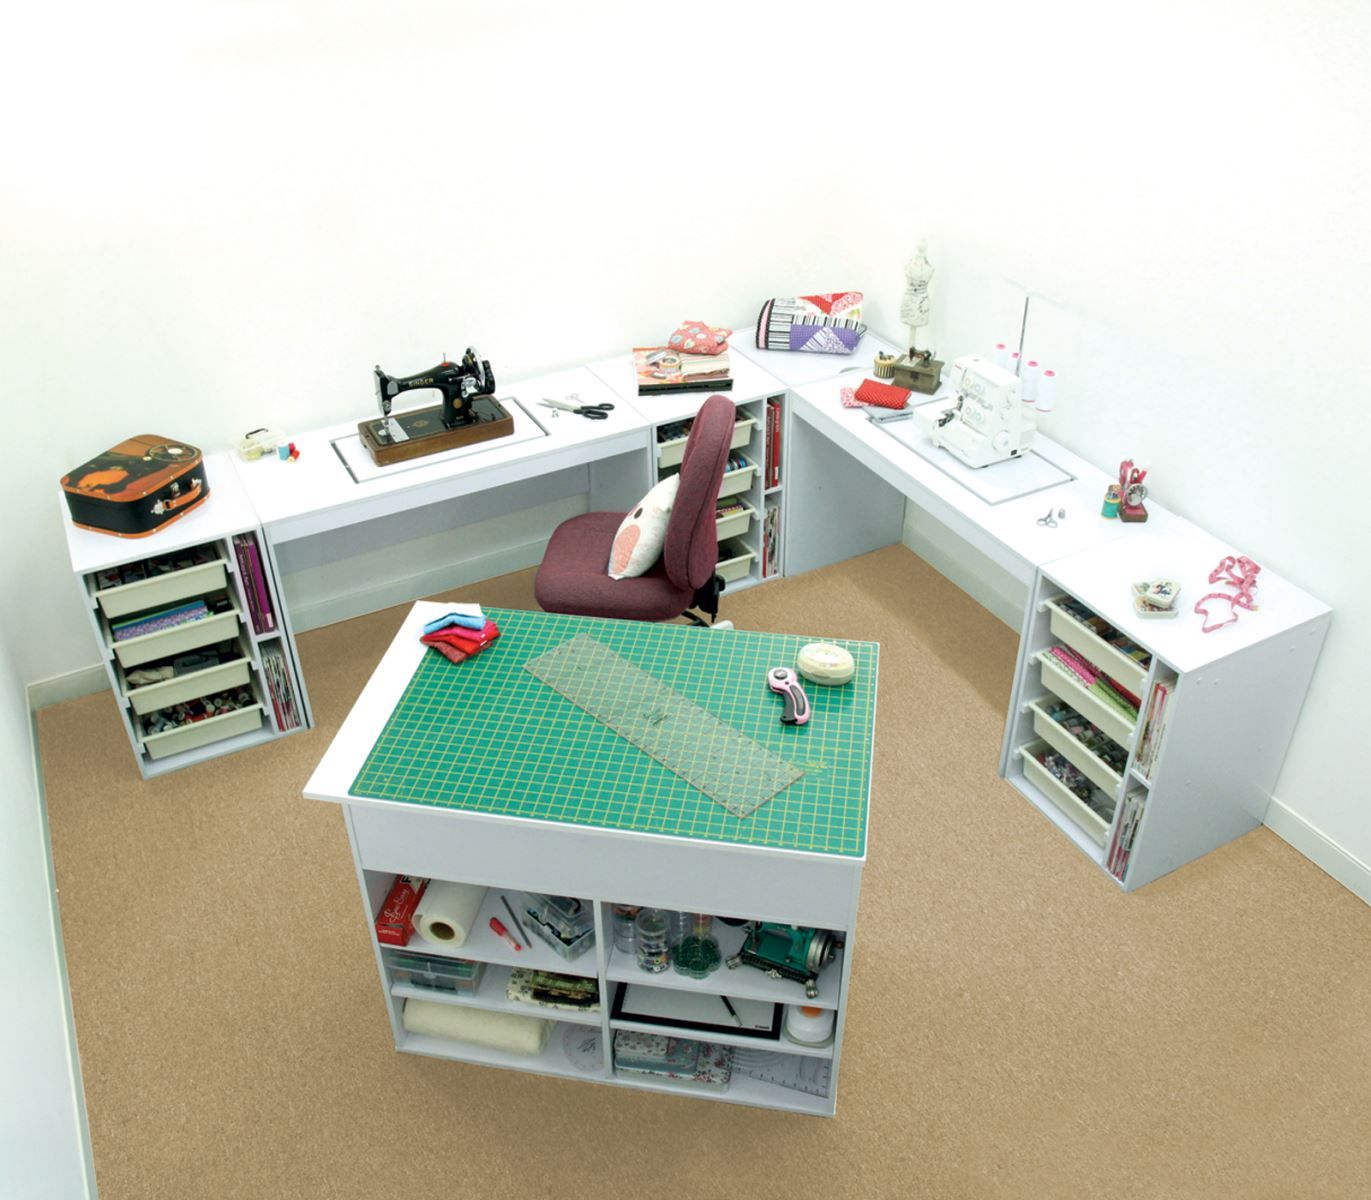 Sewing Furniture Modular Elements Package Promo By Tailormade In Furniture    Koala U0026 Tailormade Furniture